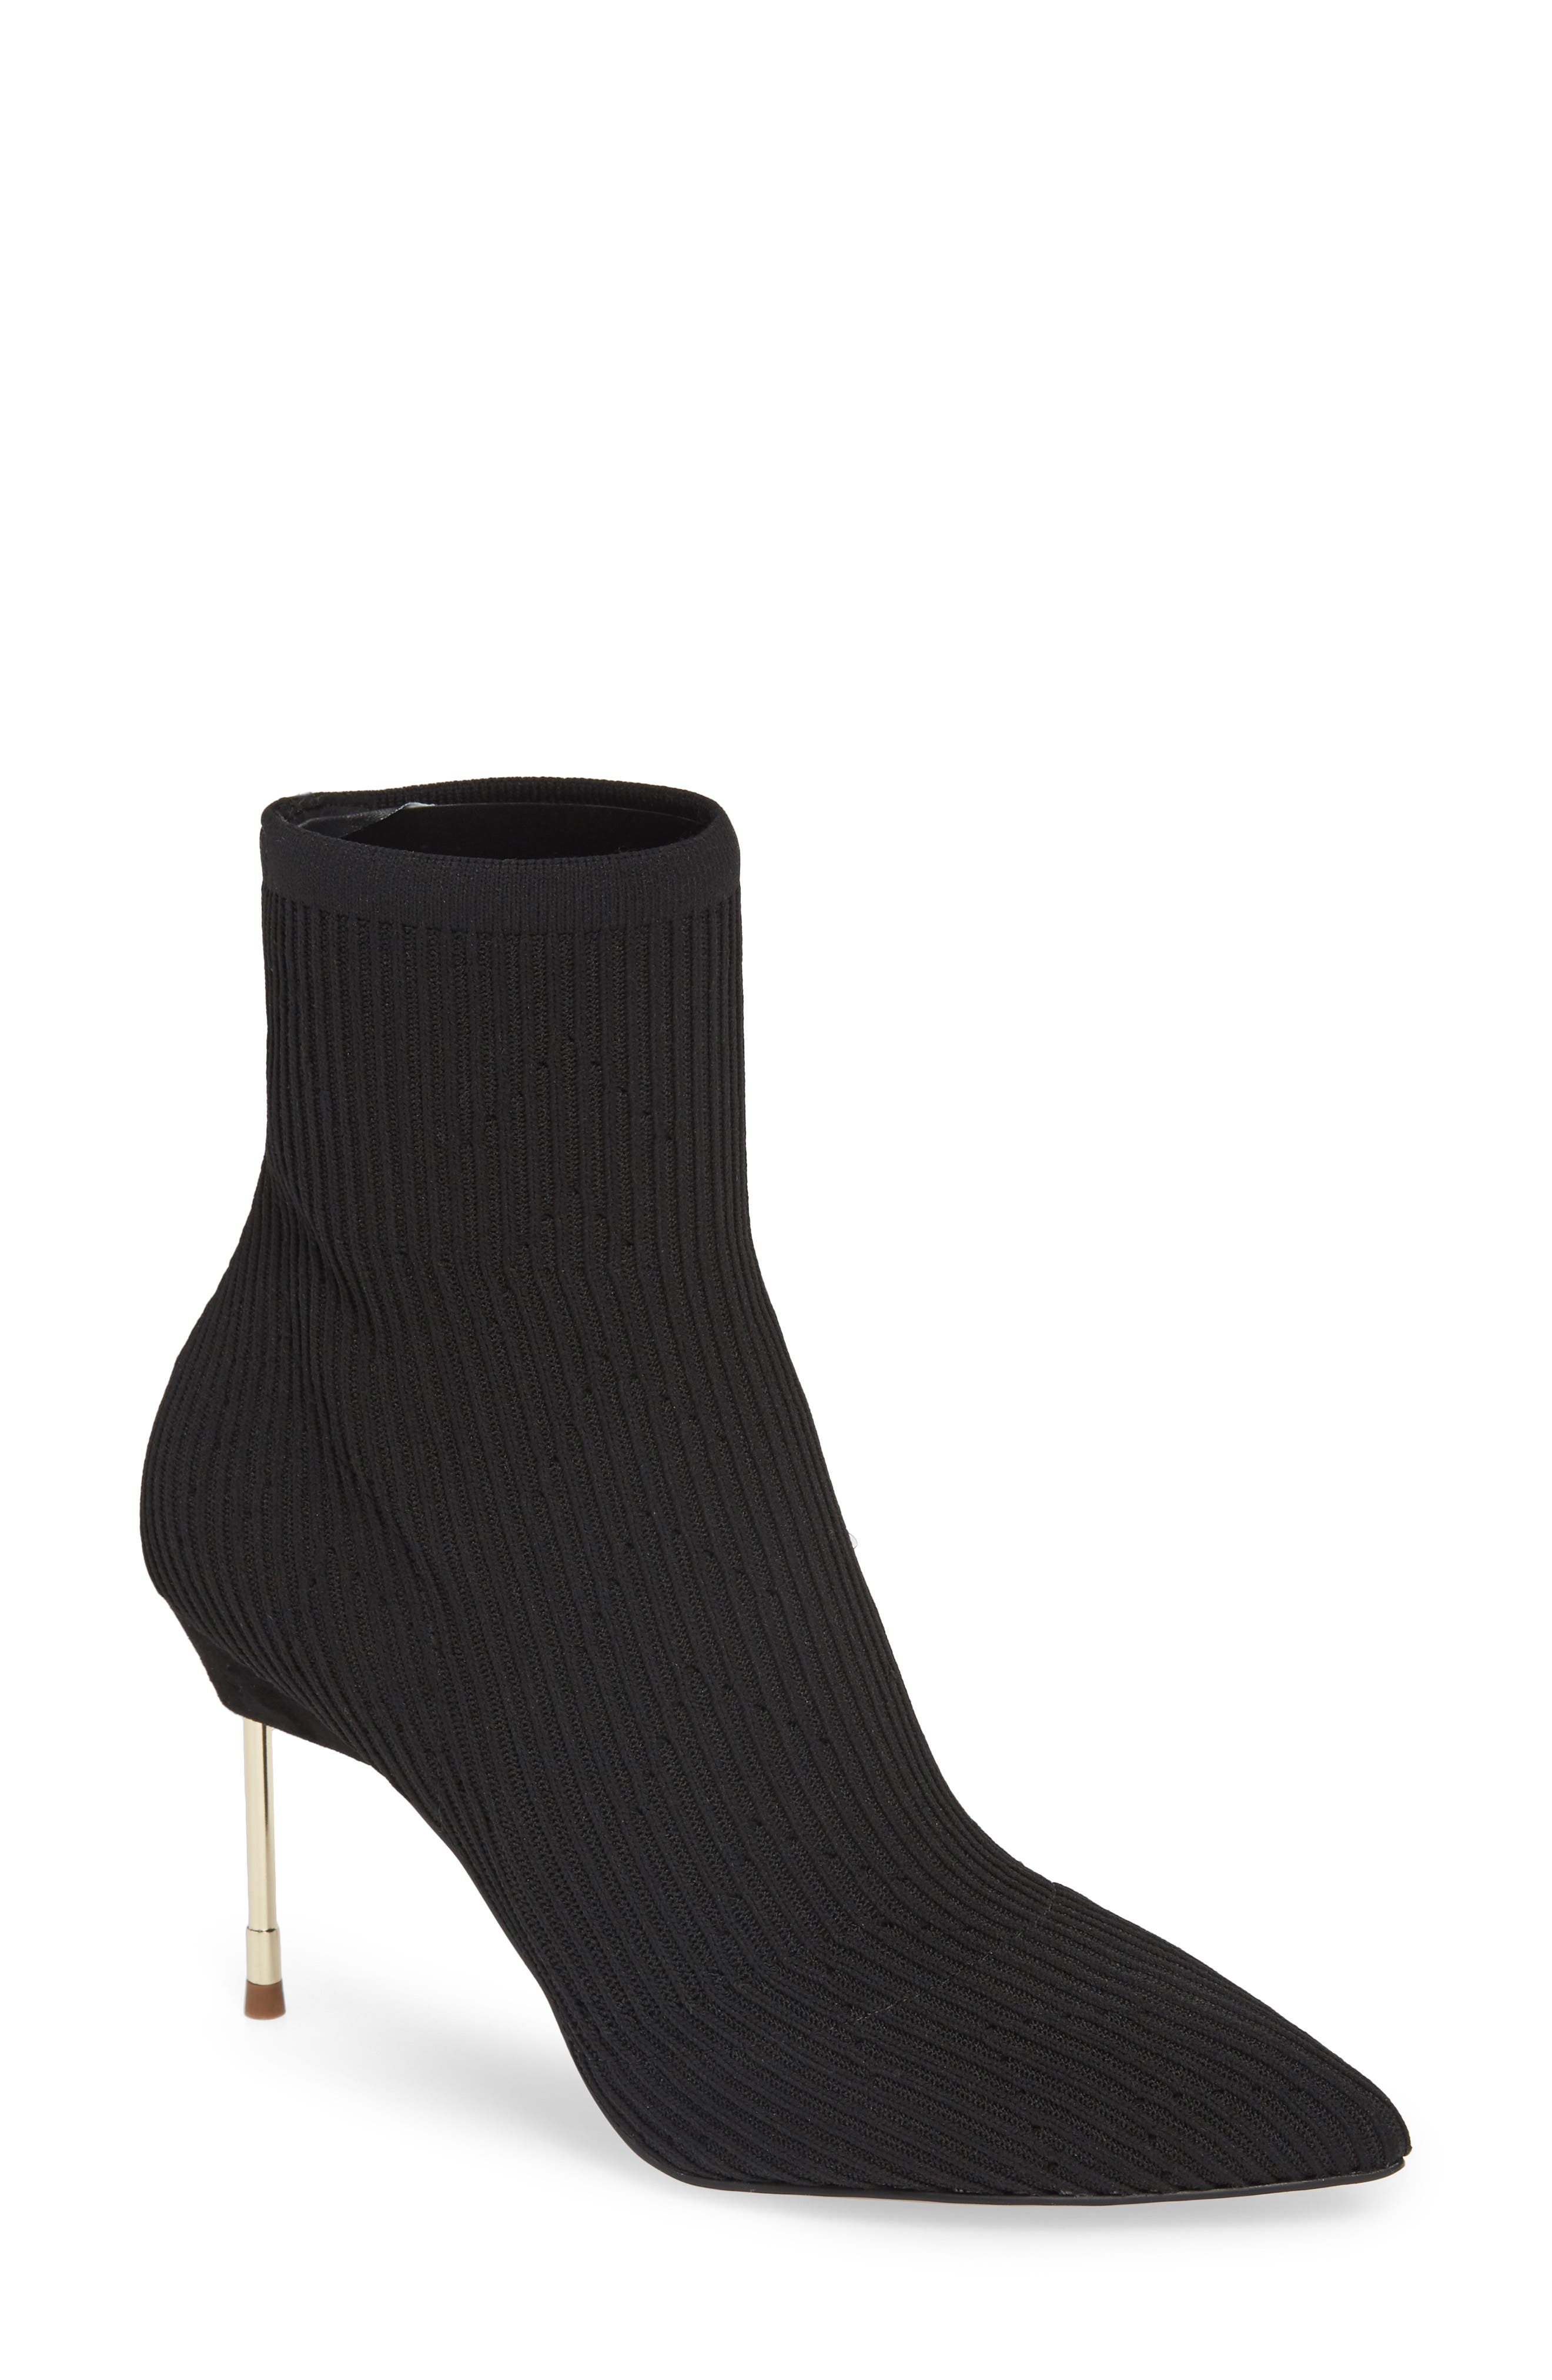 KURT GEIGER Women'S Barbican Pointed Toe Knit Booties in Black Knit